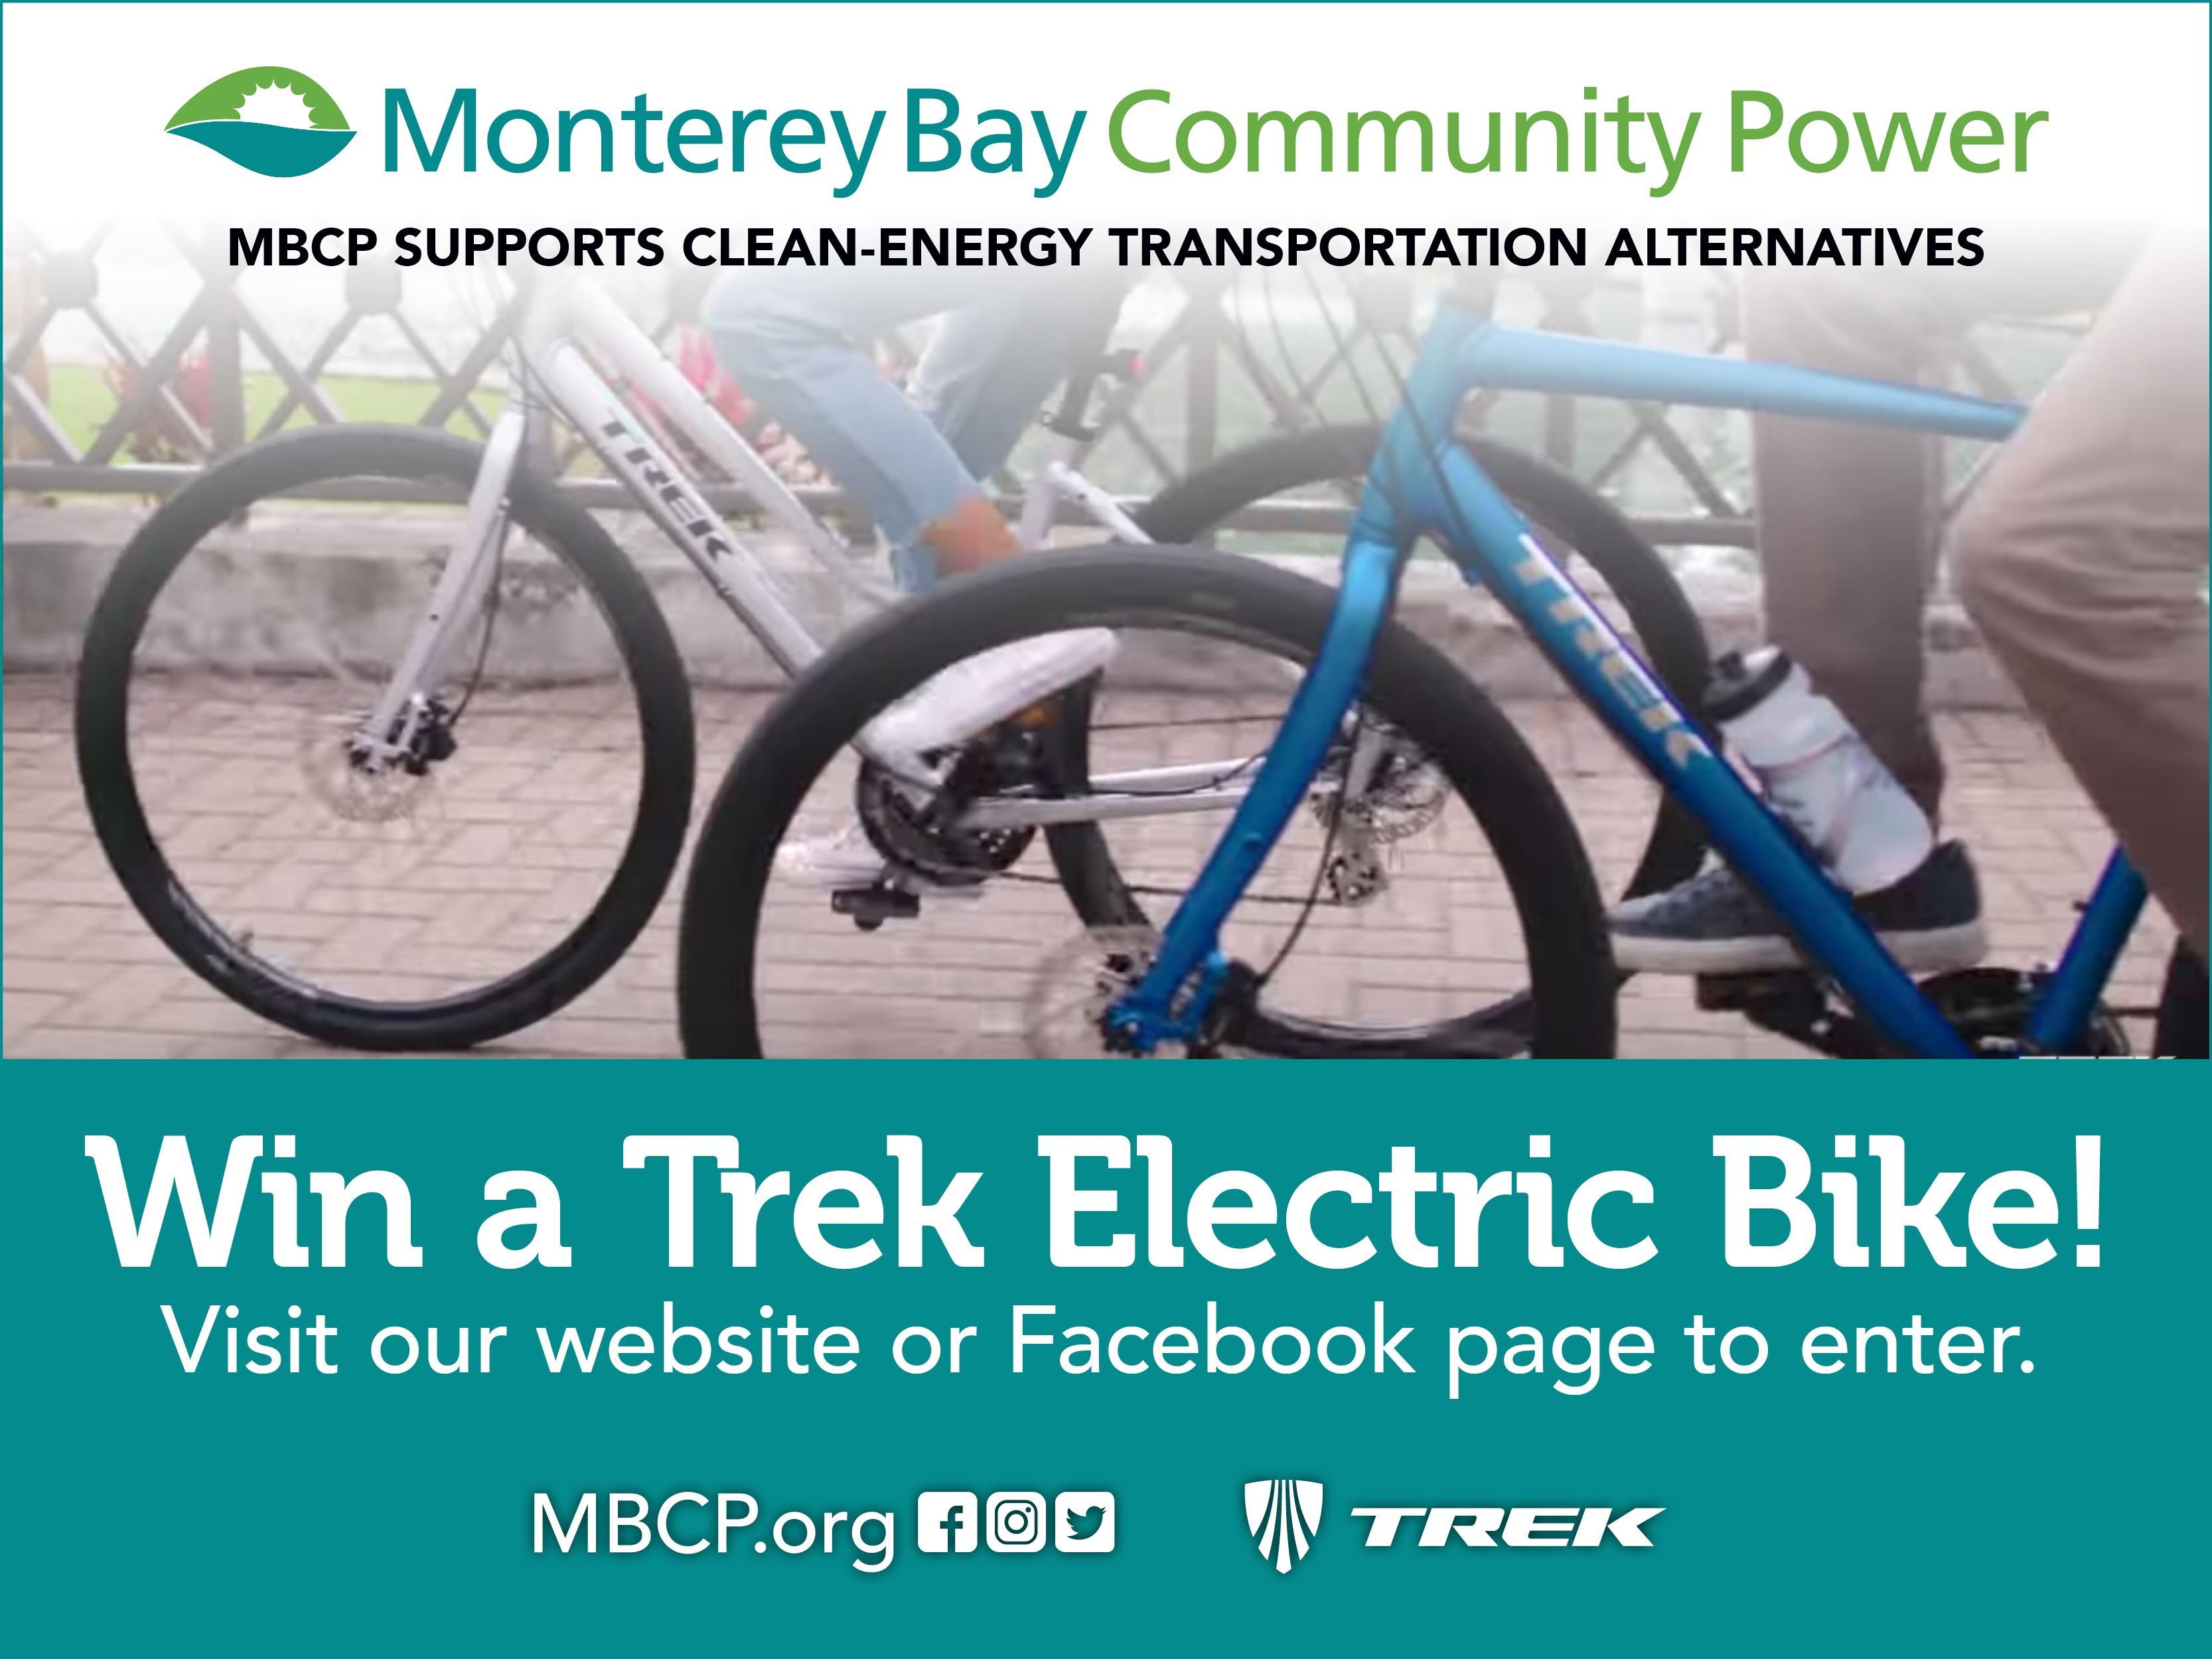 Win a TREK Electric Bike from MBCP